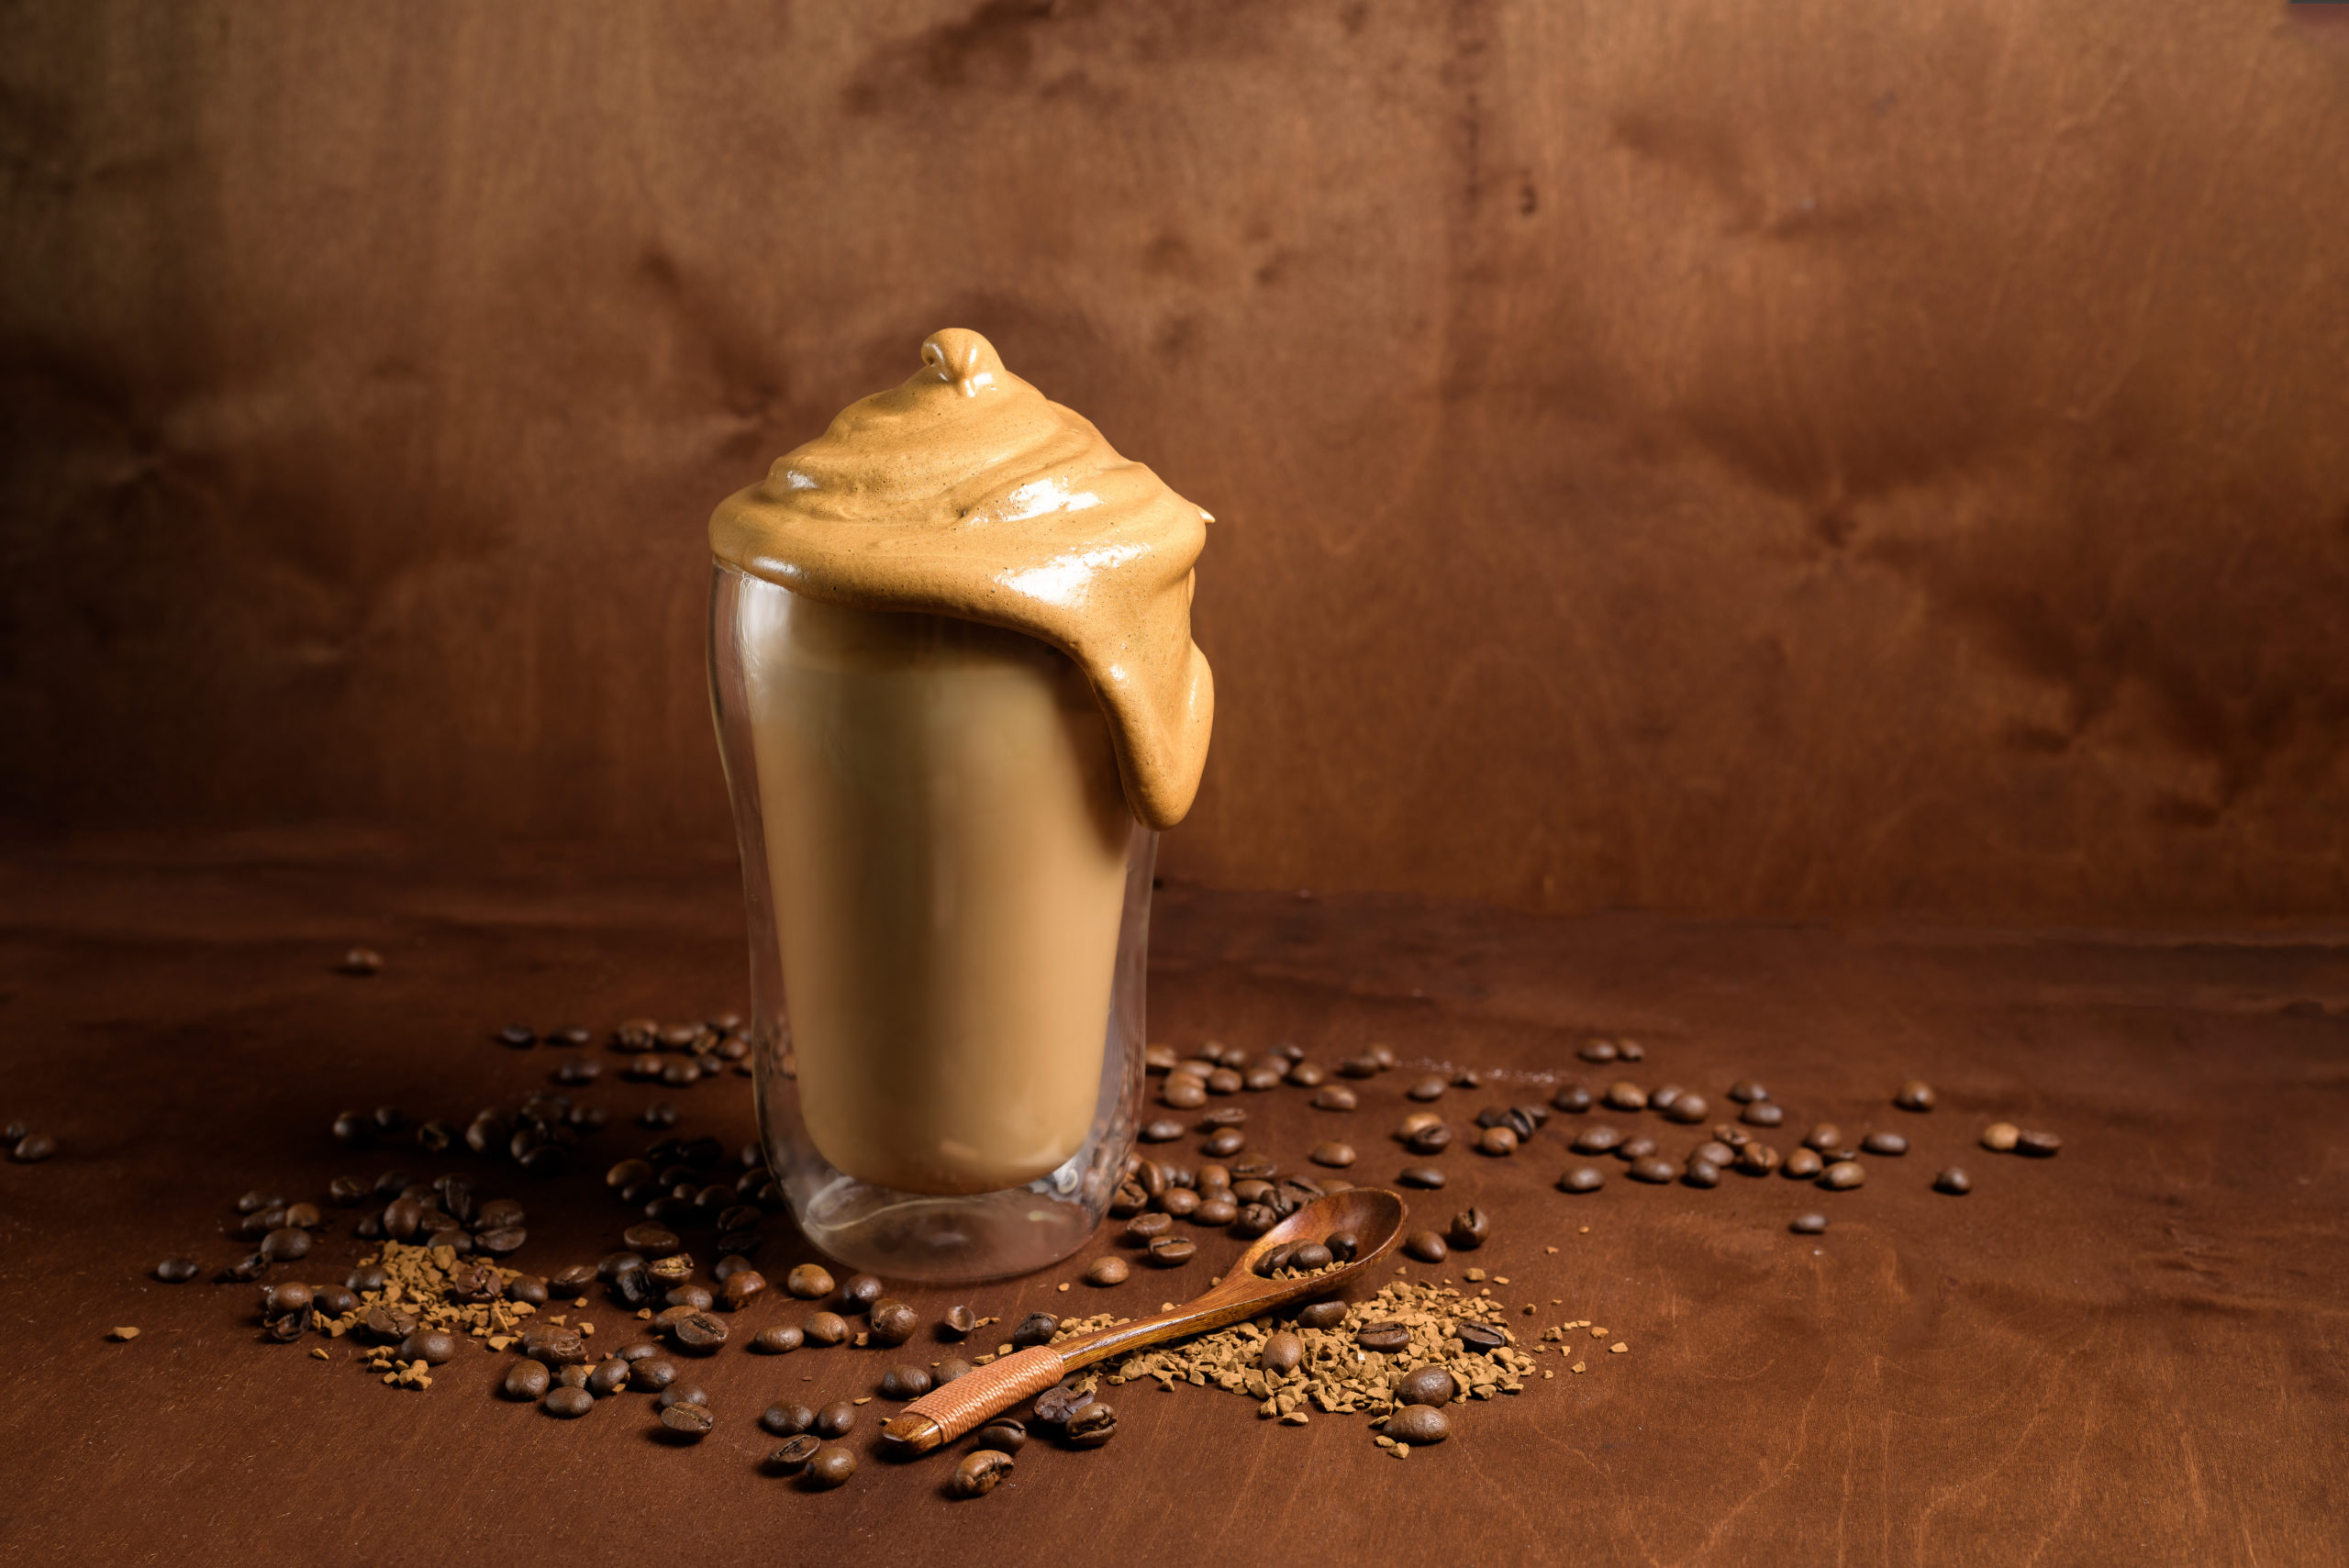 cold dalgon coffee in clear glasses on a dark wooden background. foam from sugar and instant coffee is whipped with a mixer over cold milk. Korean and Indian whipped coffee